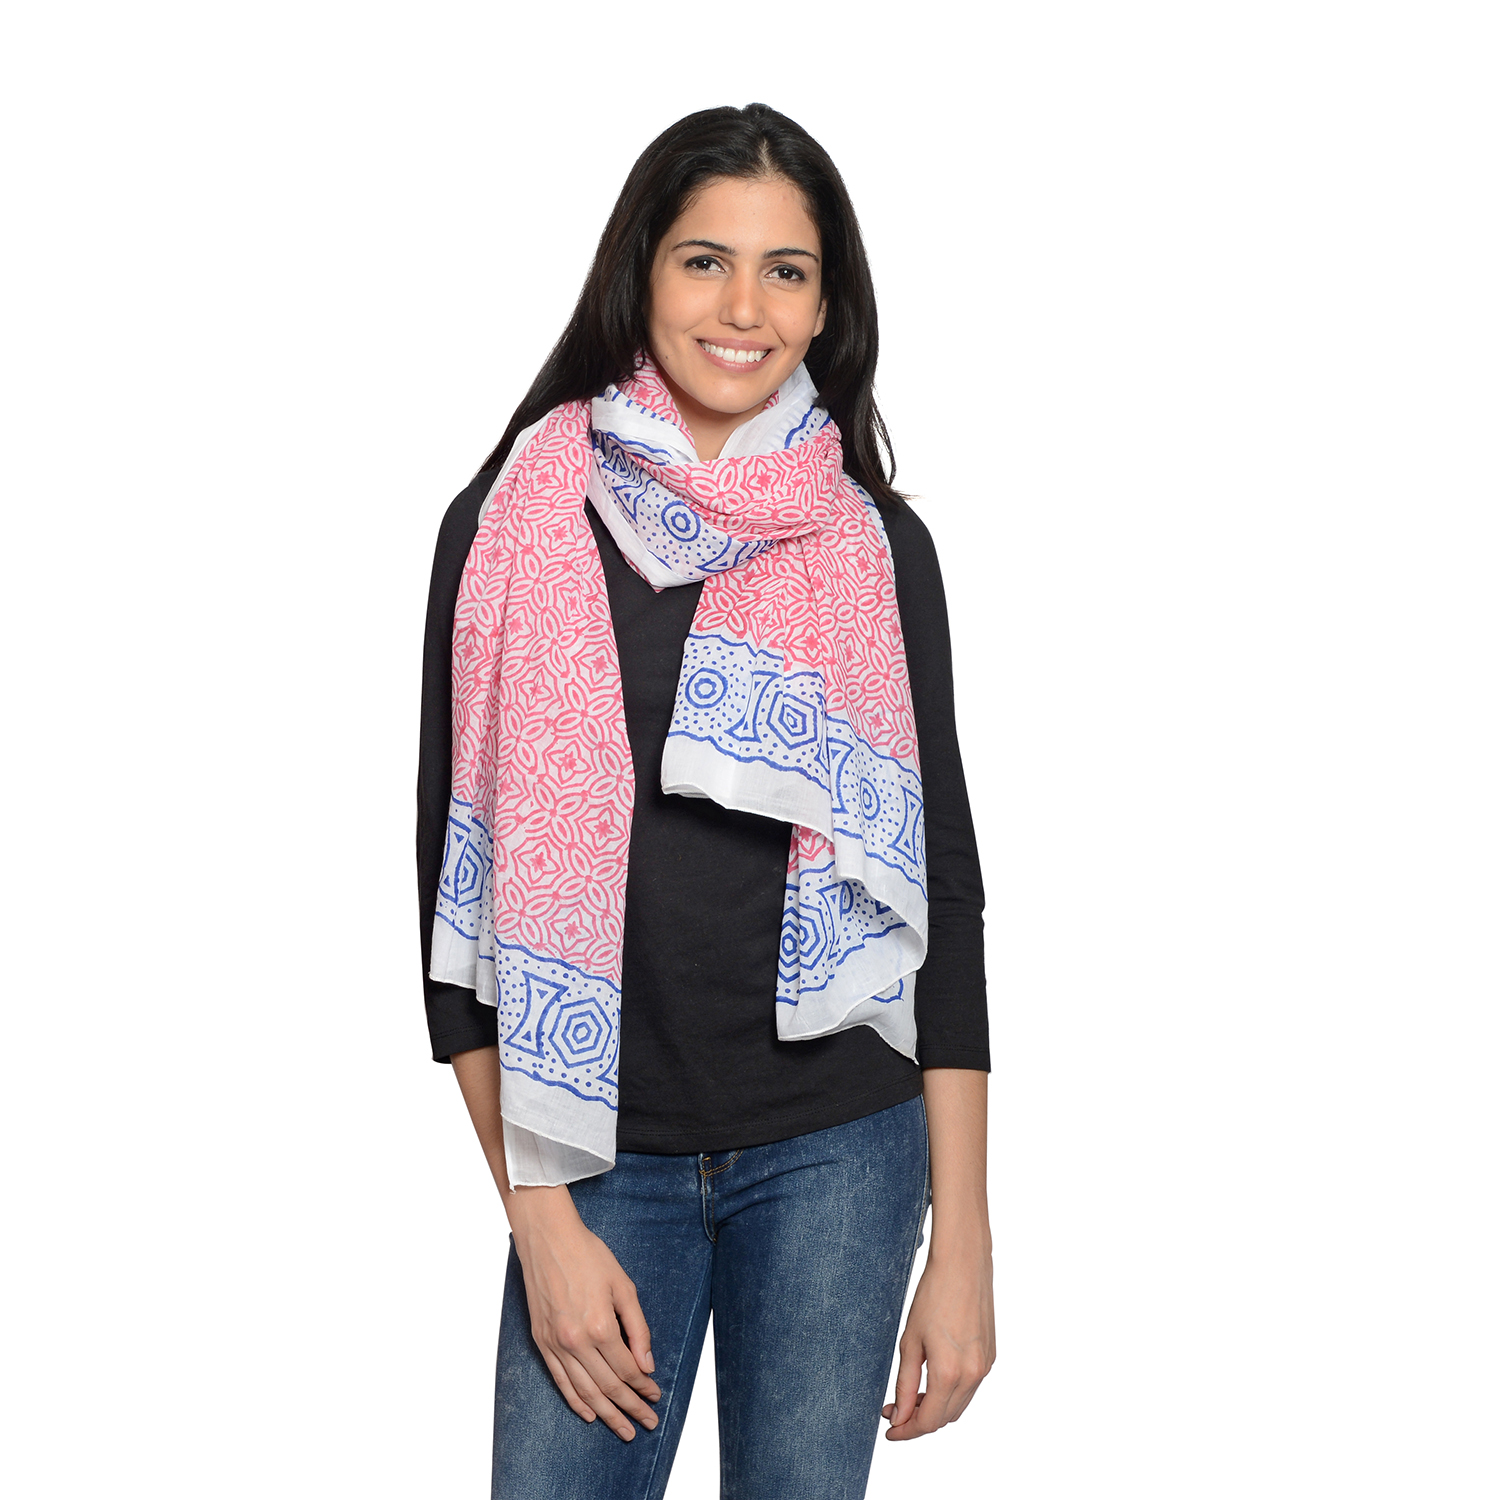 073e75a5fc8 Rose Red and Blue 100% Cotton Floral Geometric Pattern Hand Painted Scarf  (70x44 in)